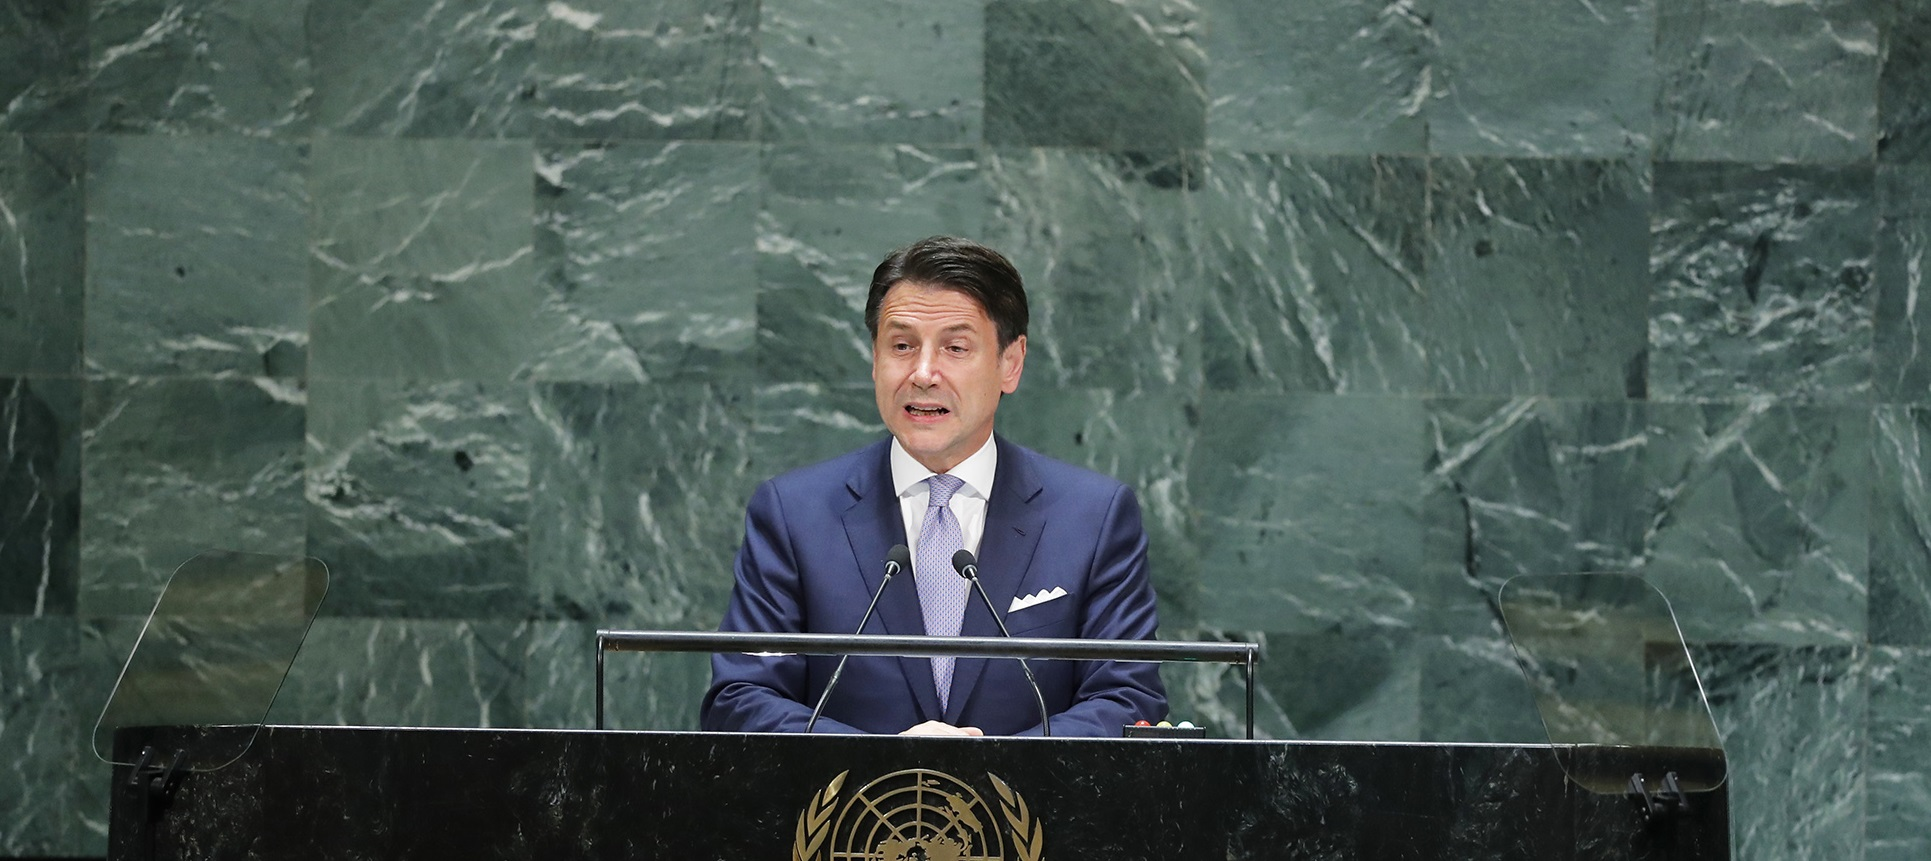 Prime Minister Conte brings Rondine to the UN General Assembly as a model for conflicts mediation